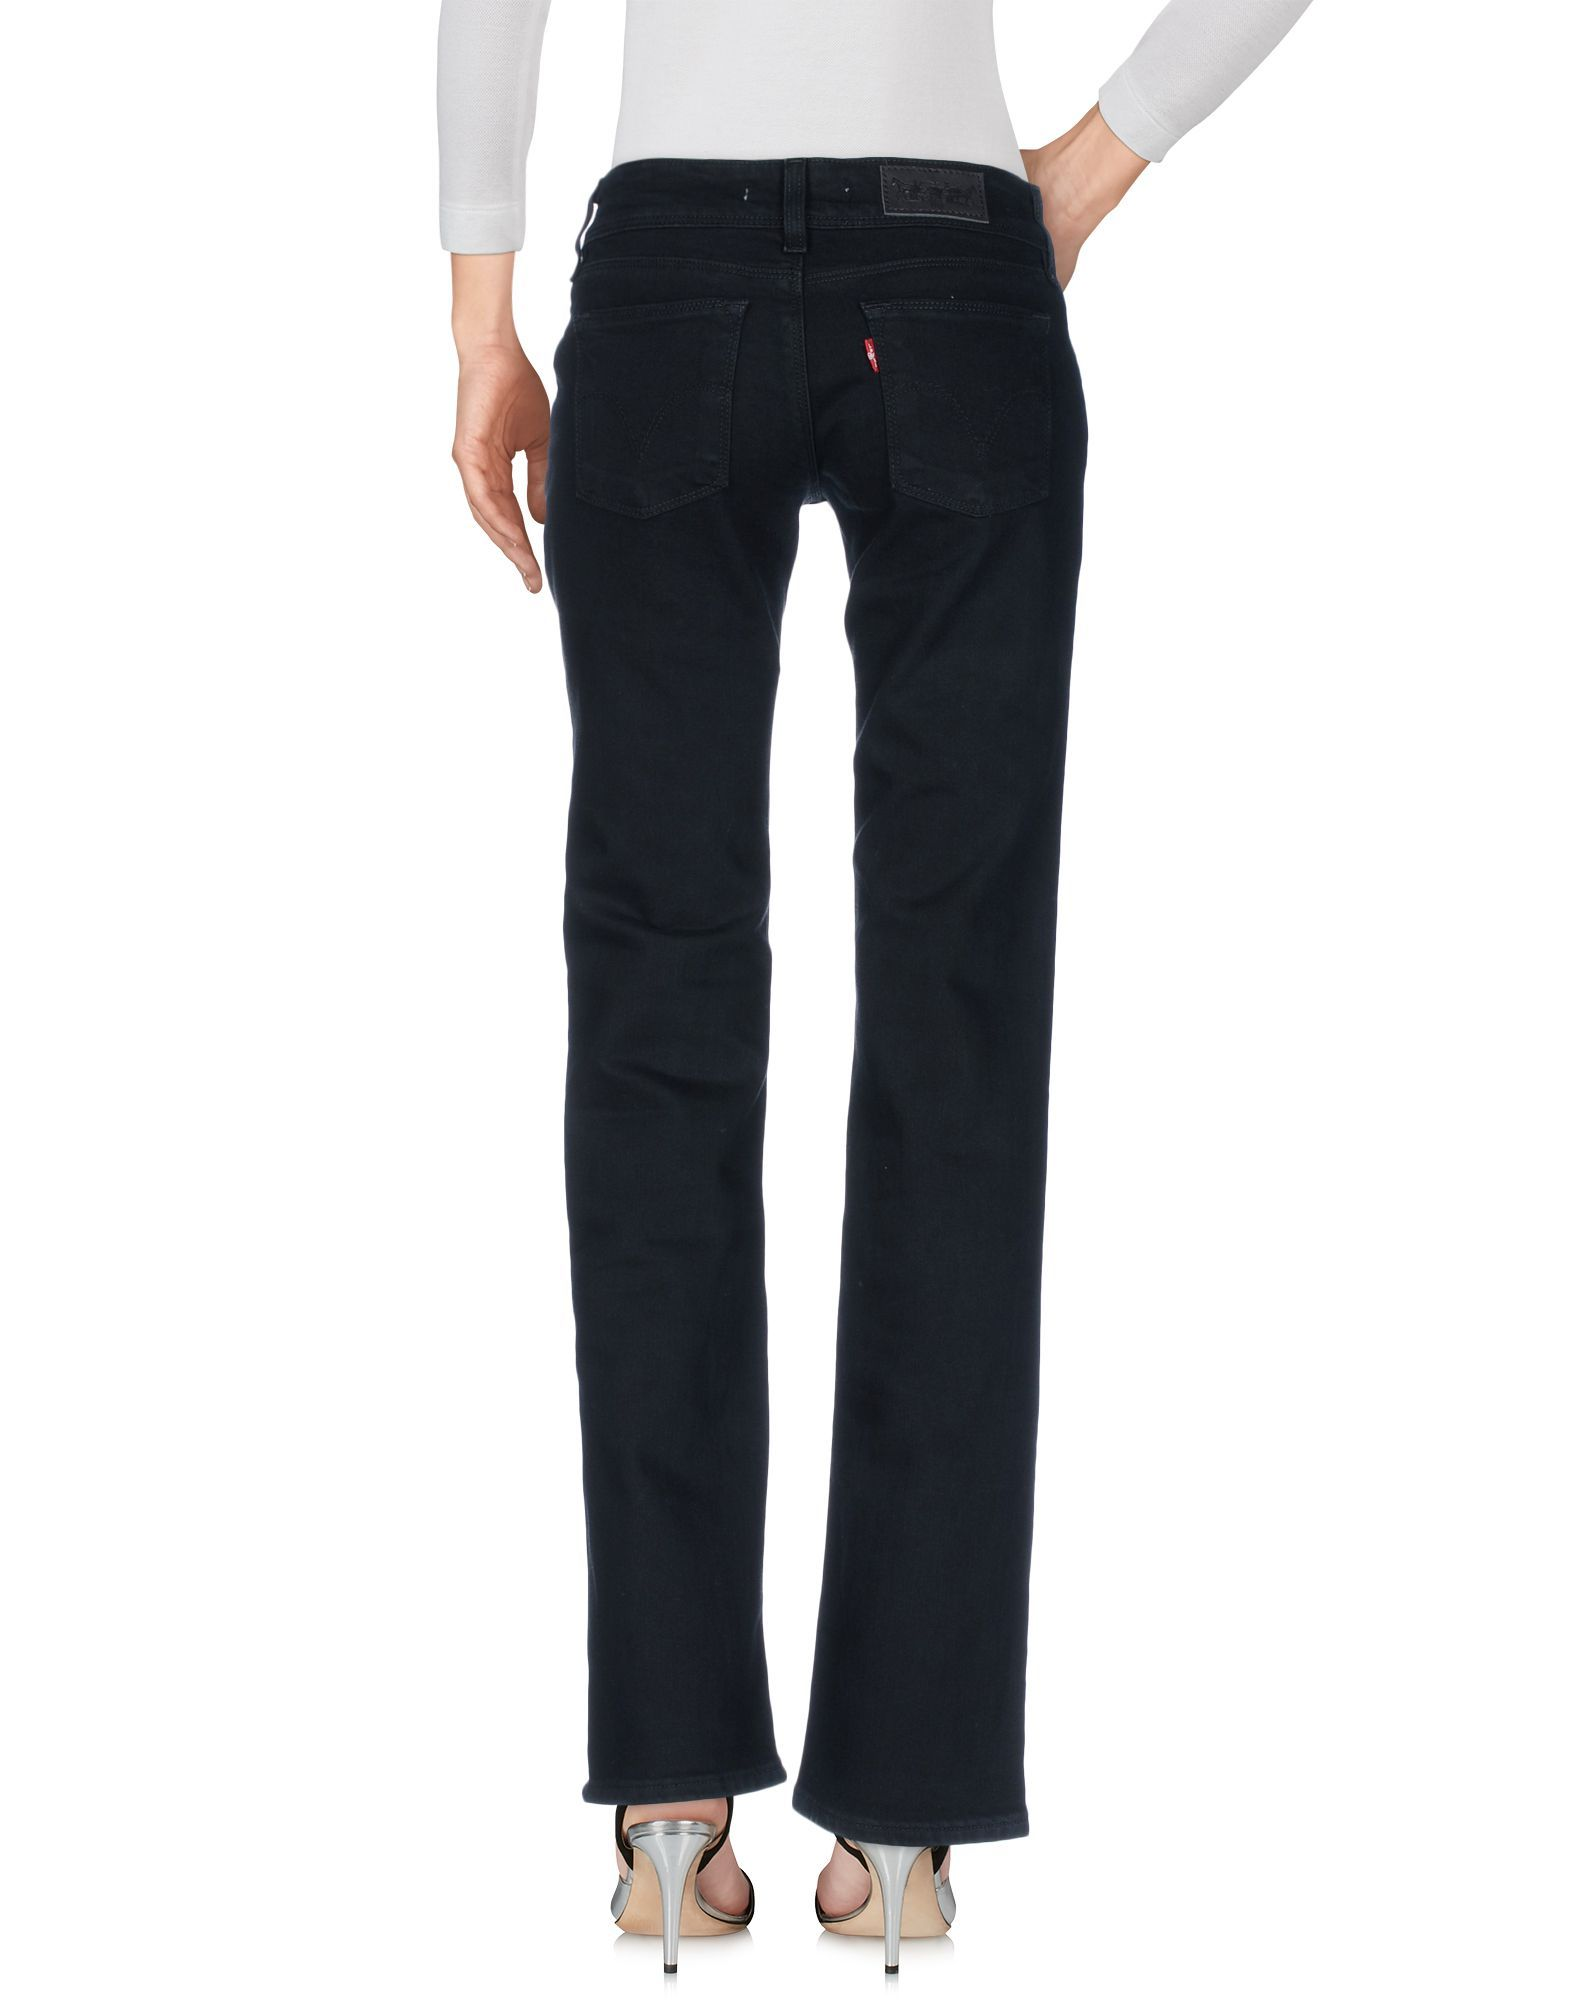 Levi's Black Cotton Jeans